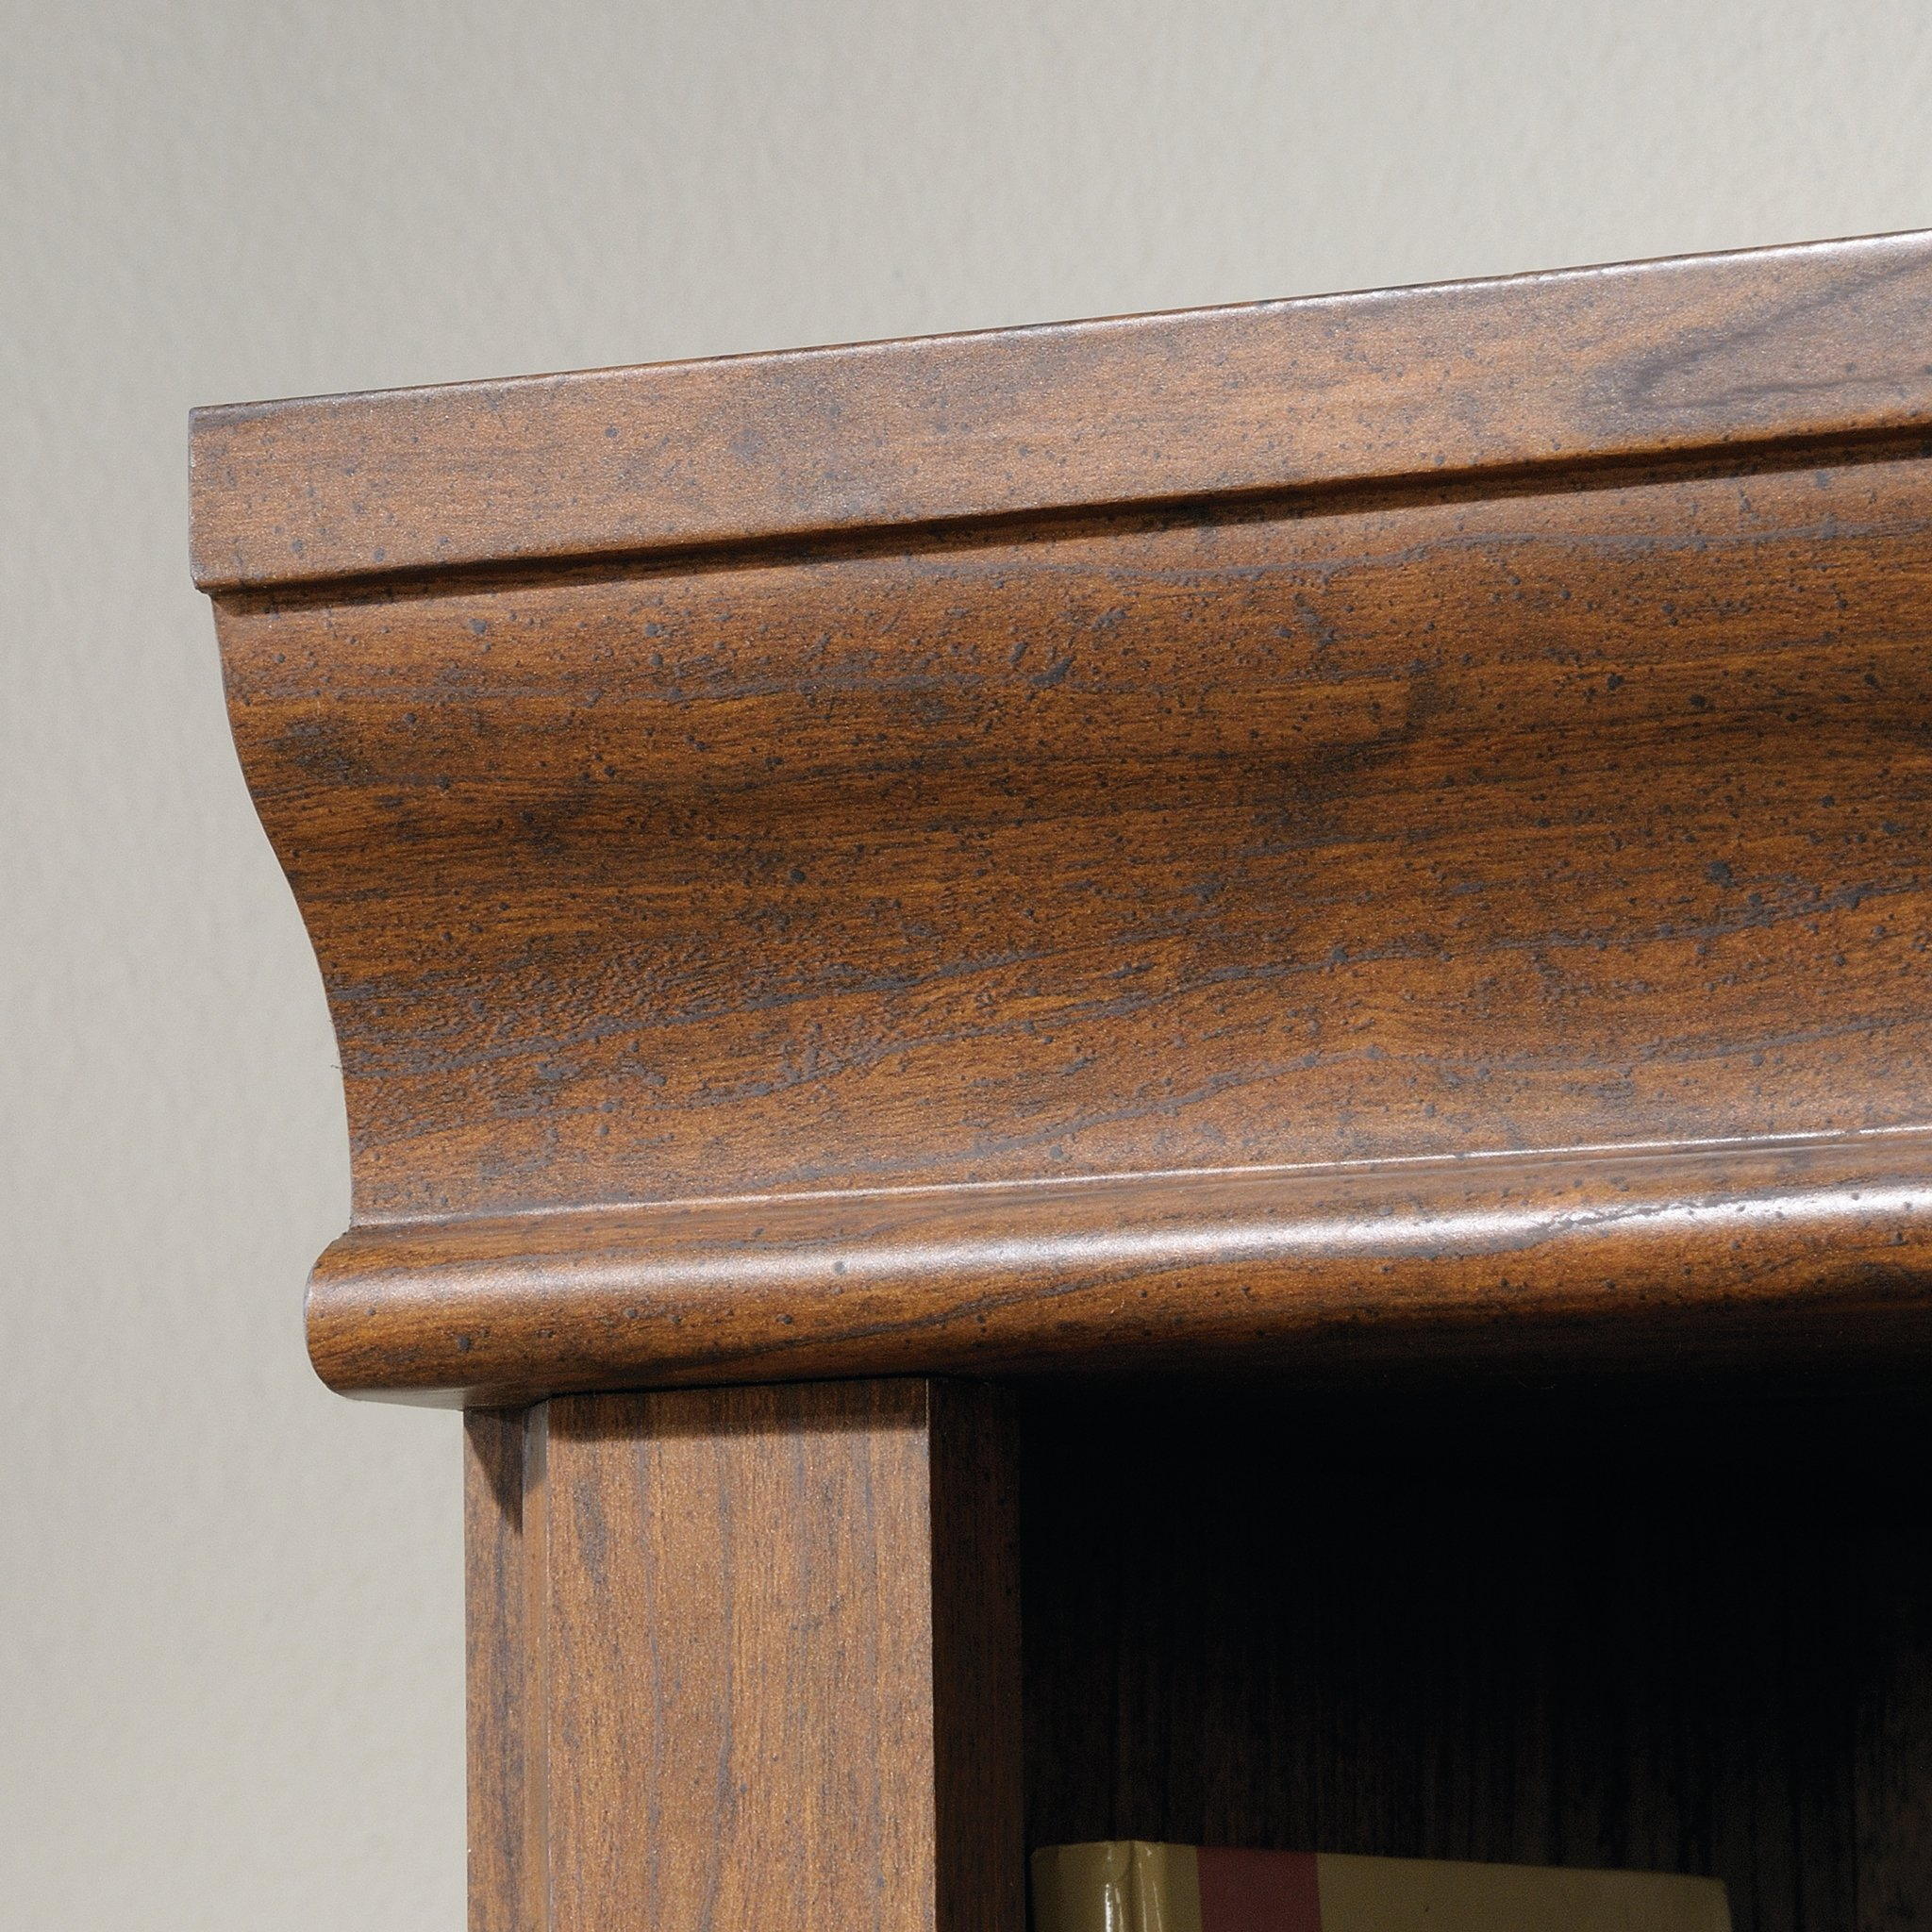 Sauder 418734 Orchard Hills Library with Doors, L: 29.45'' x W: 13.47'' x H: 71.50'', Milled Cherry finish by Sauder (Image #4)